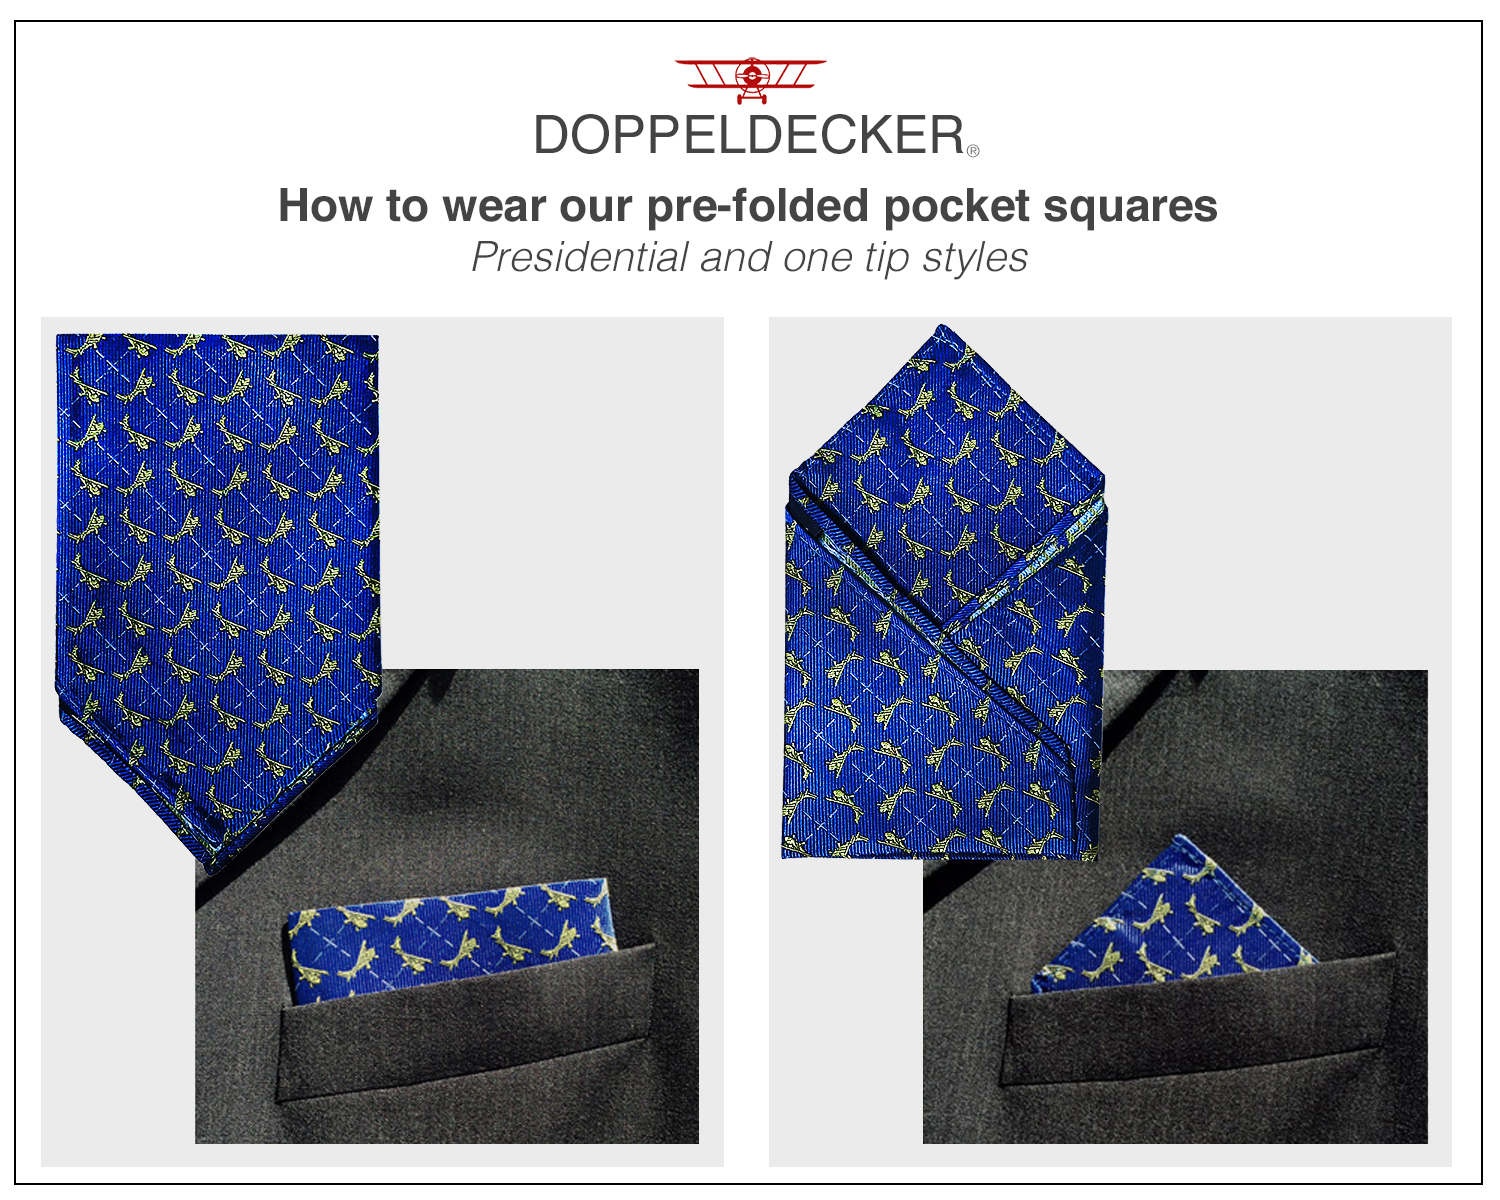 doppeldecker pocket square